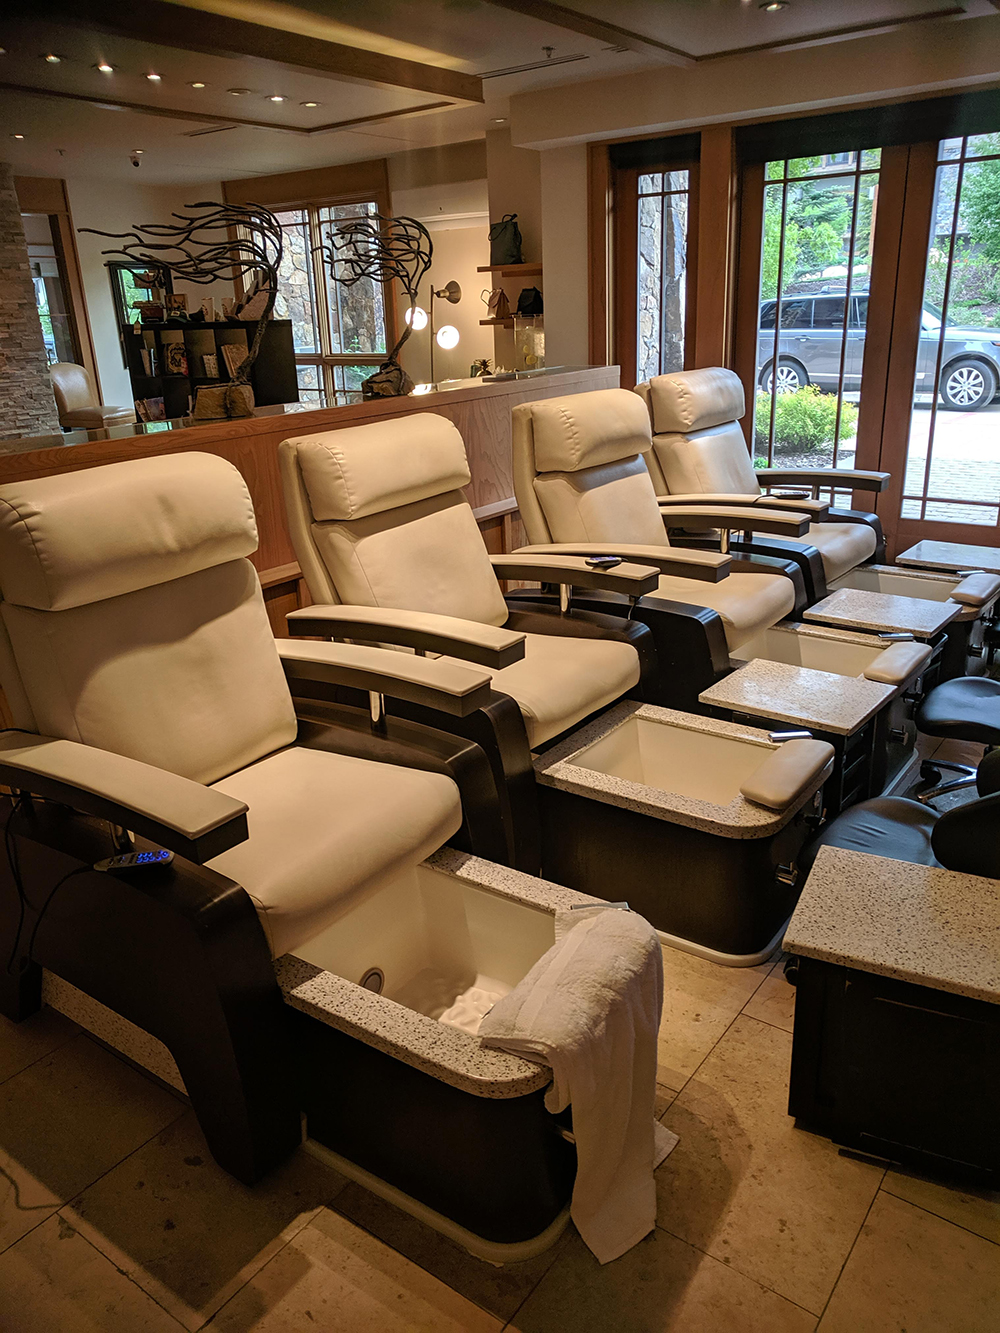 Pedicure chairs resized.jpg